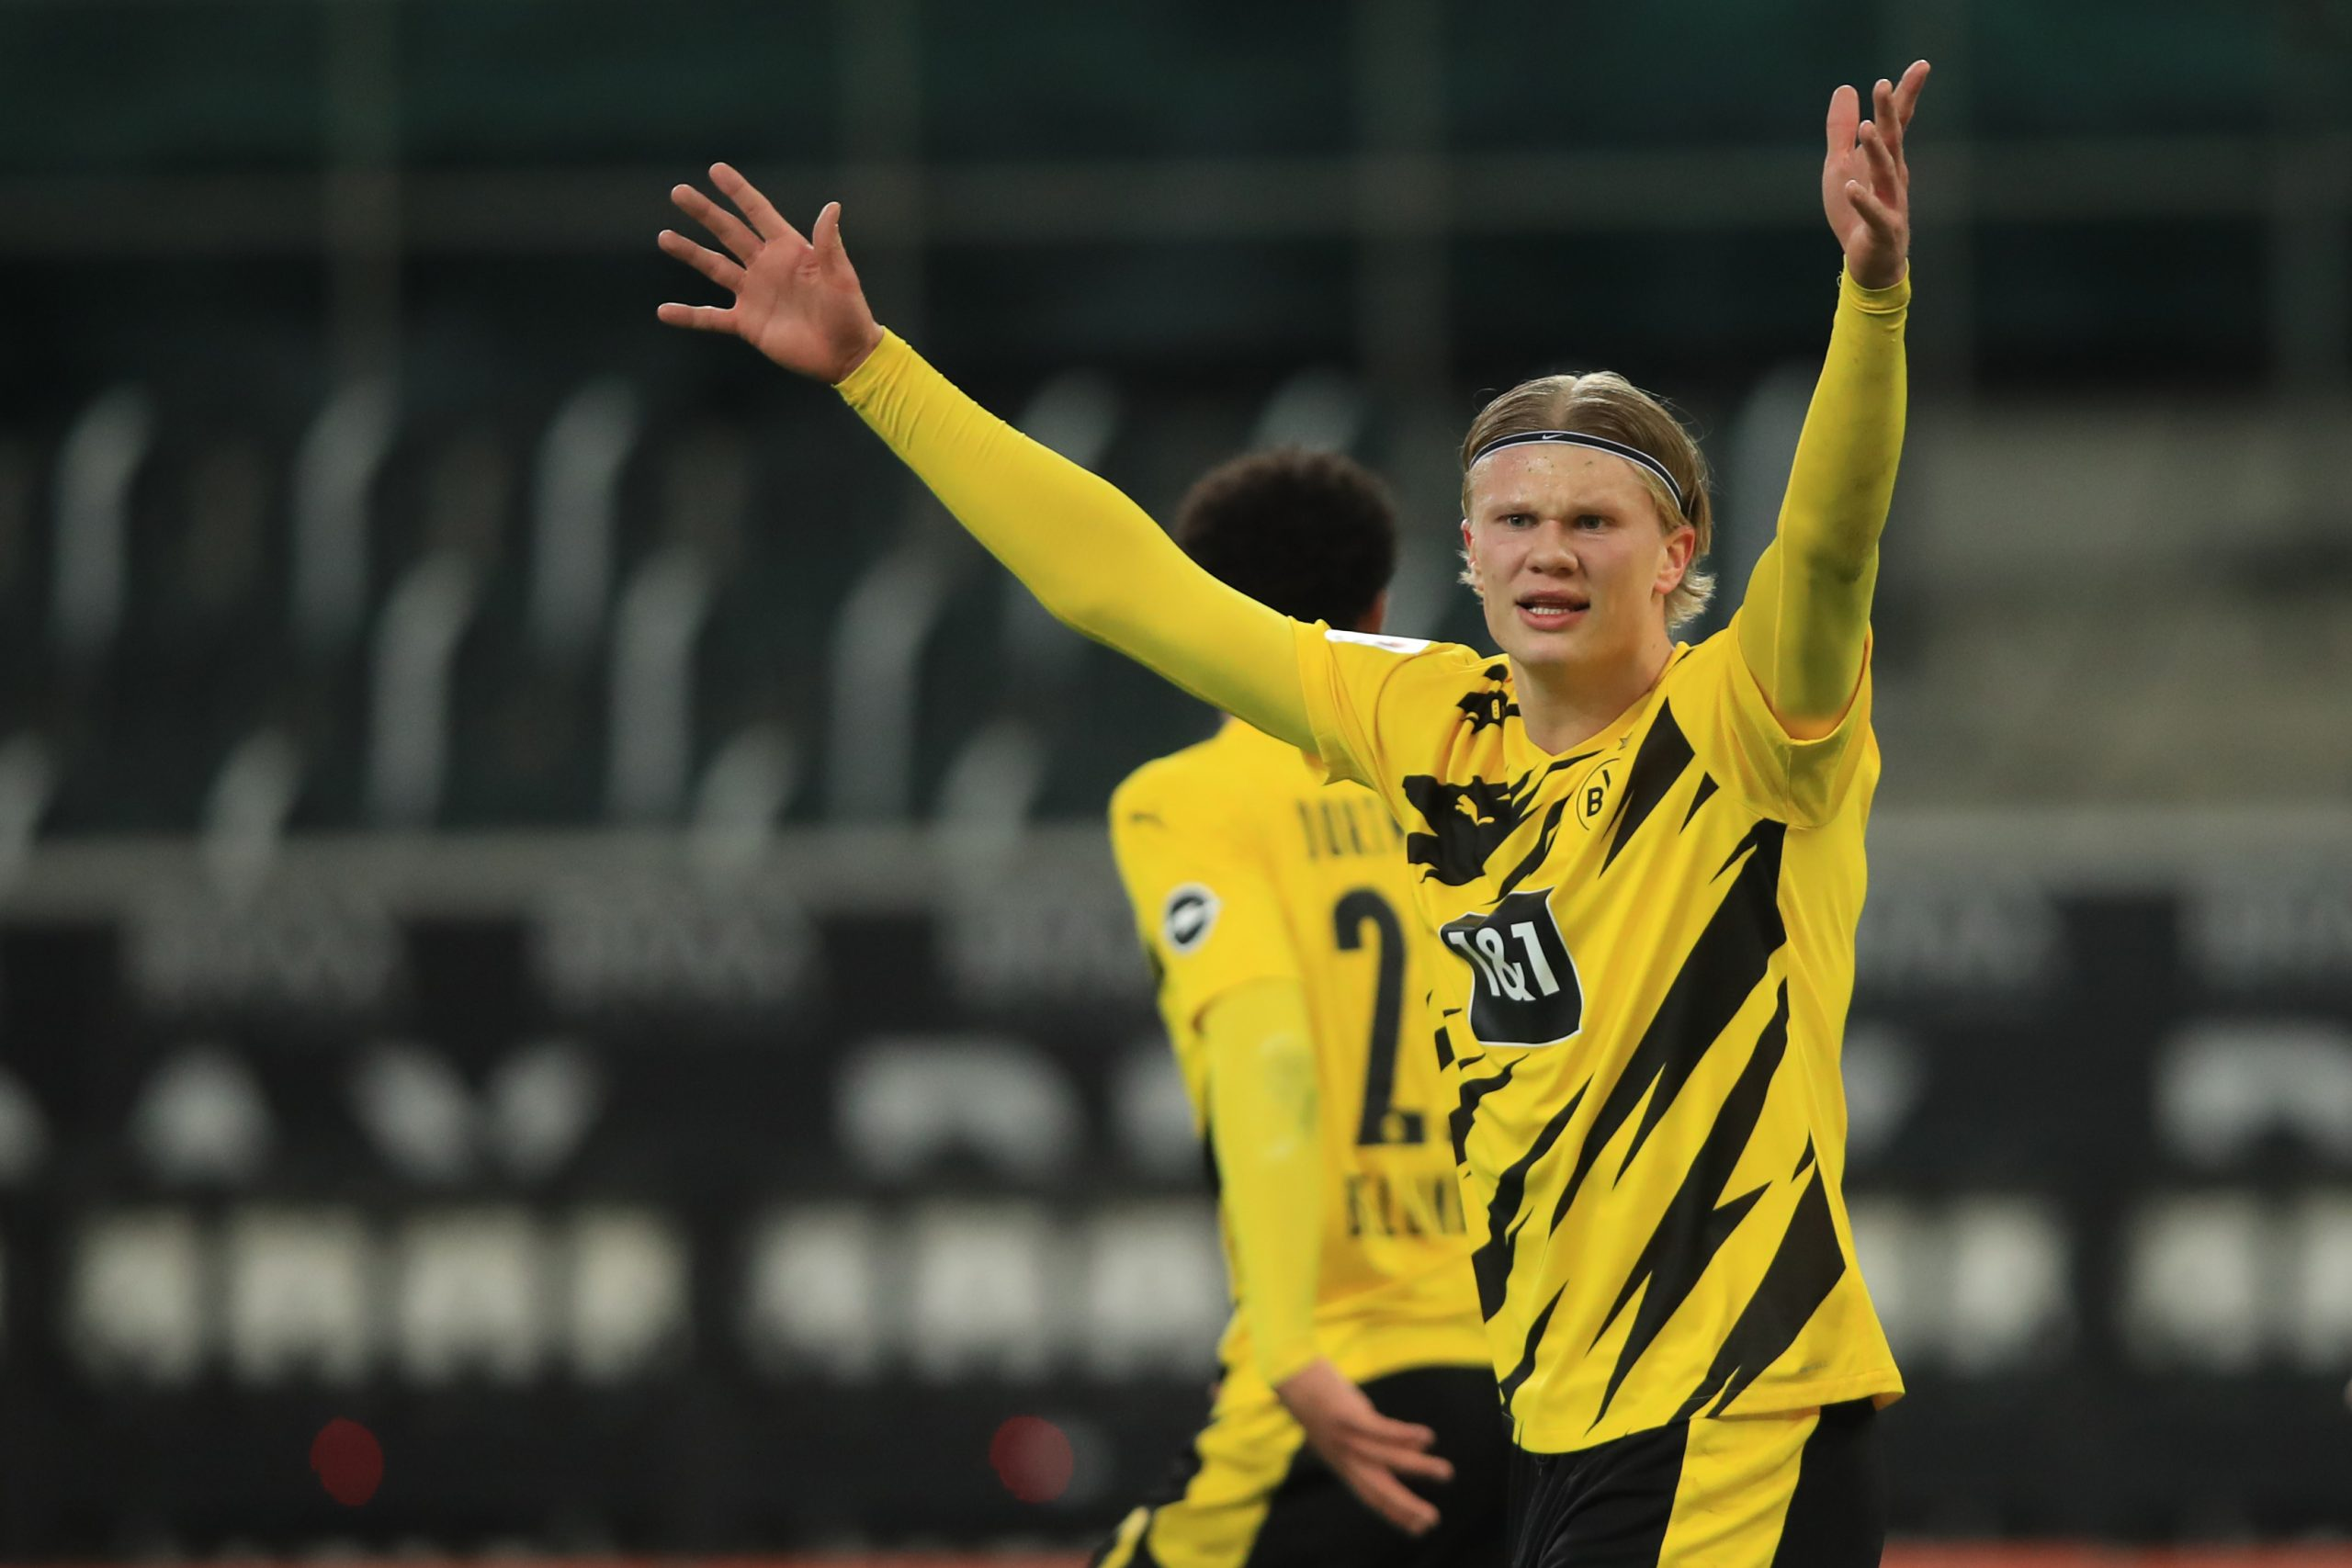 Erling Haaland in action for Borussia Dortmund. (GETTY Images)